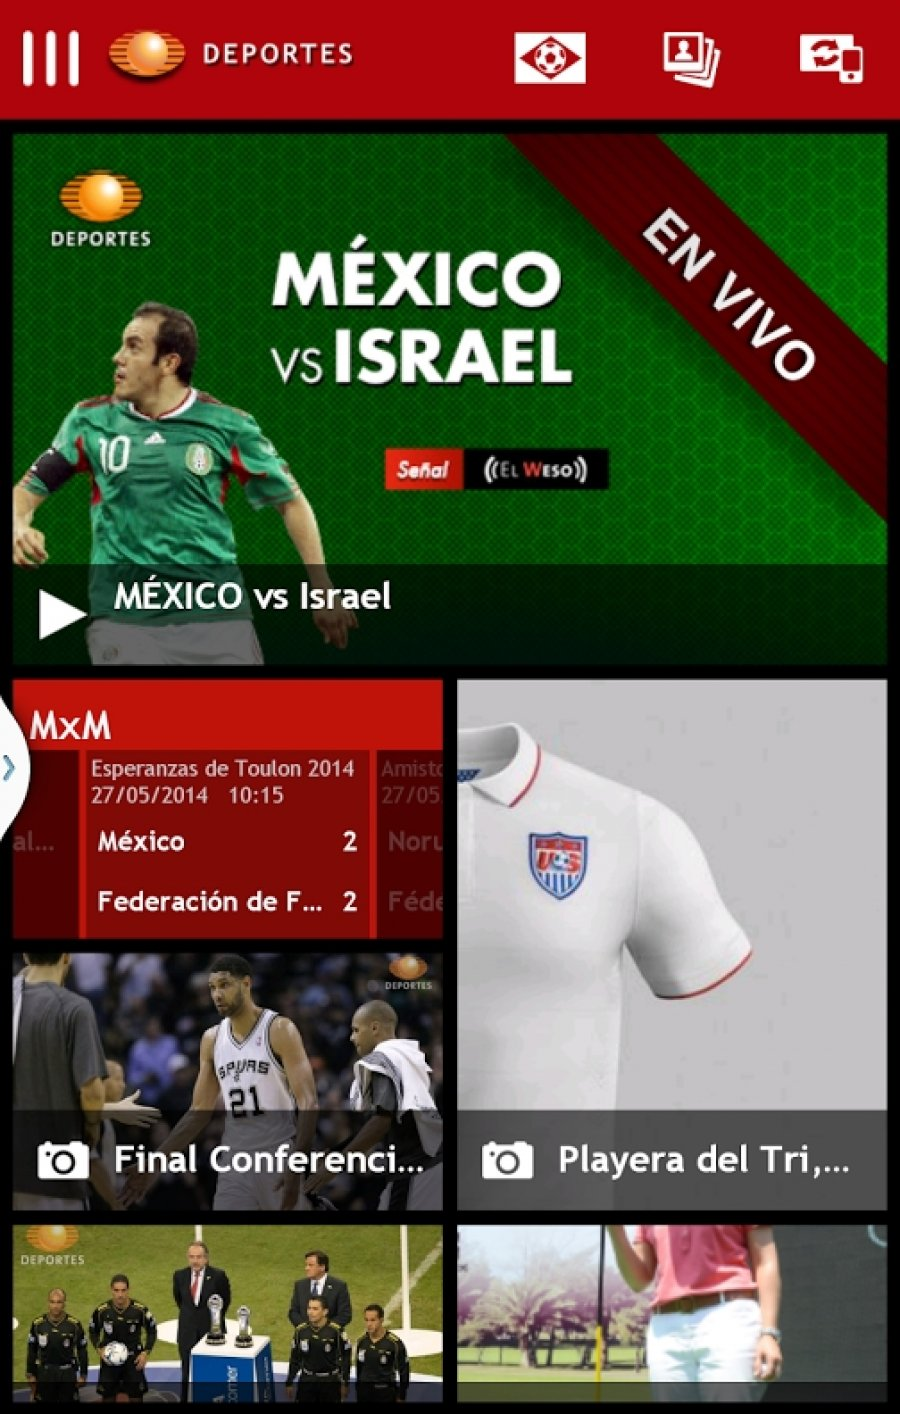 Televisa Apk For Android - Approm.org MOD Free Full Download Unlimited Money Gold Unlocked All